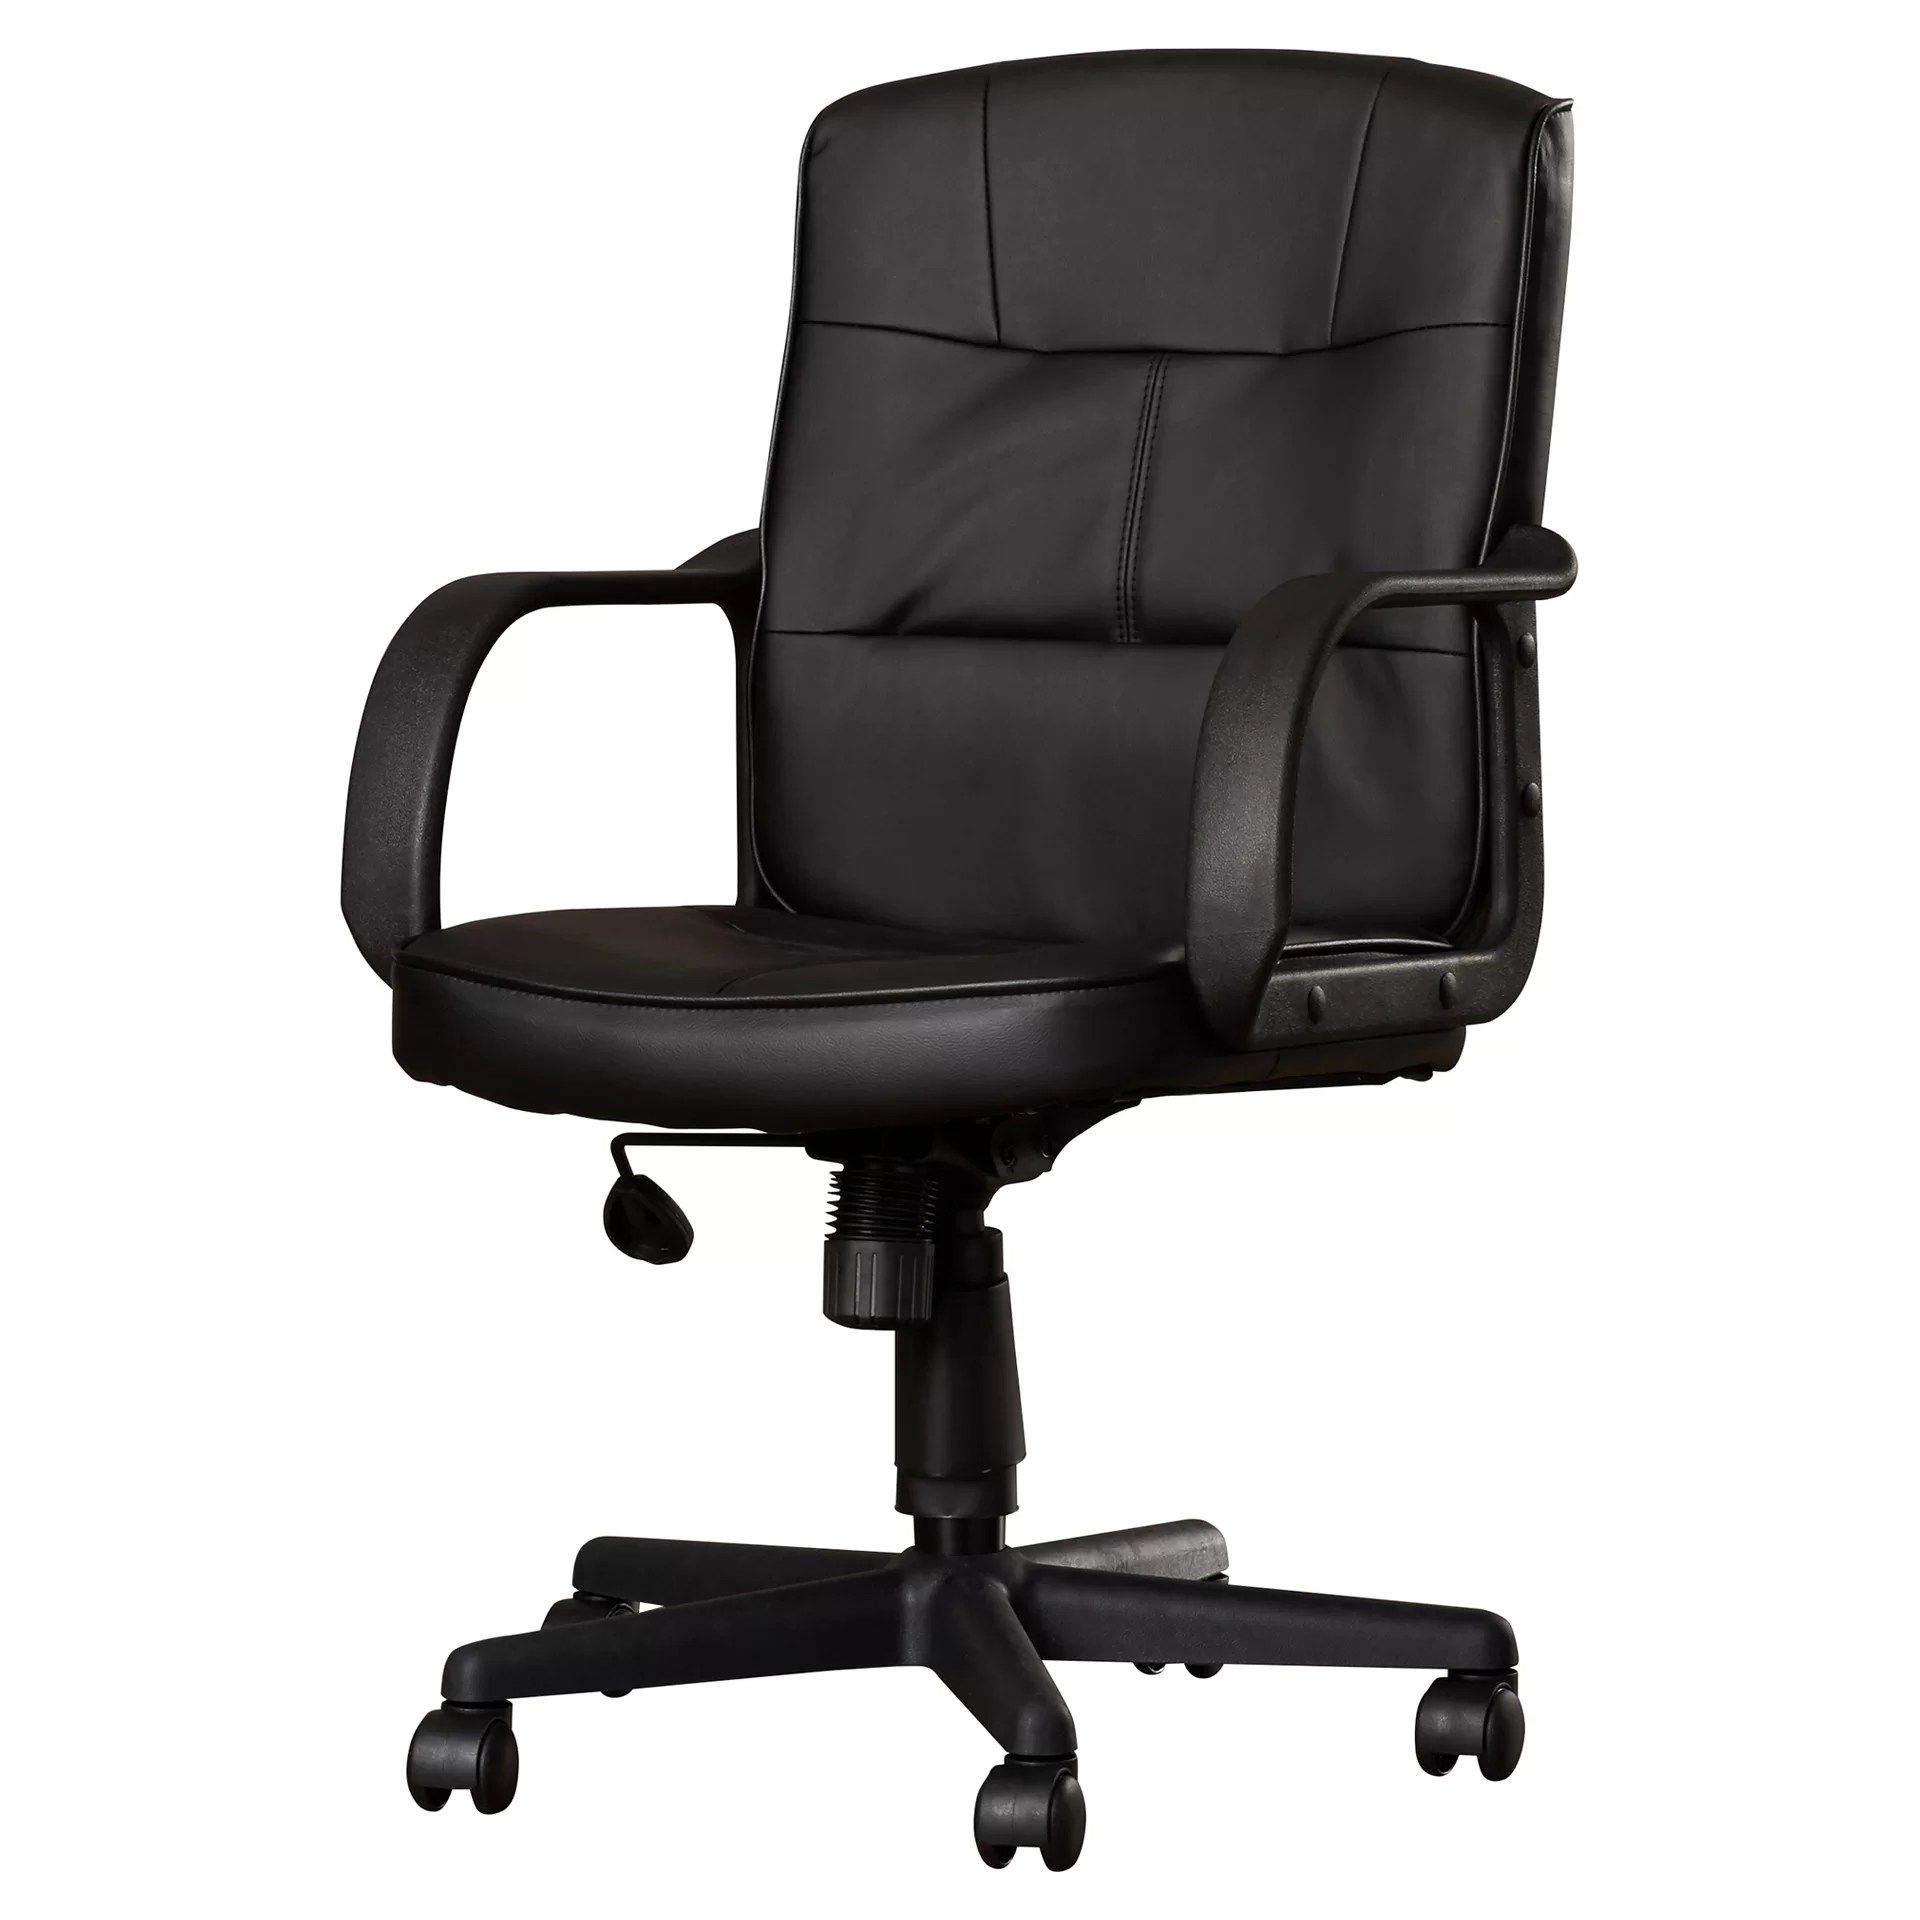 desk chair is too low covers essex charlton home reeve back leather office with